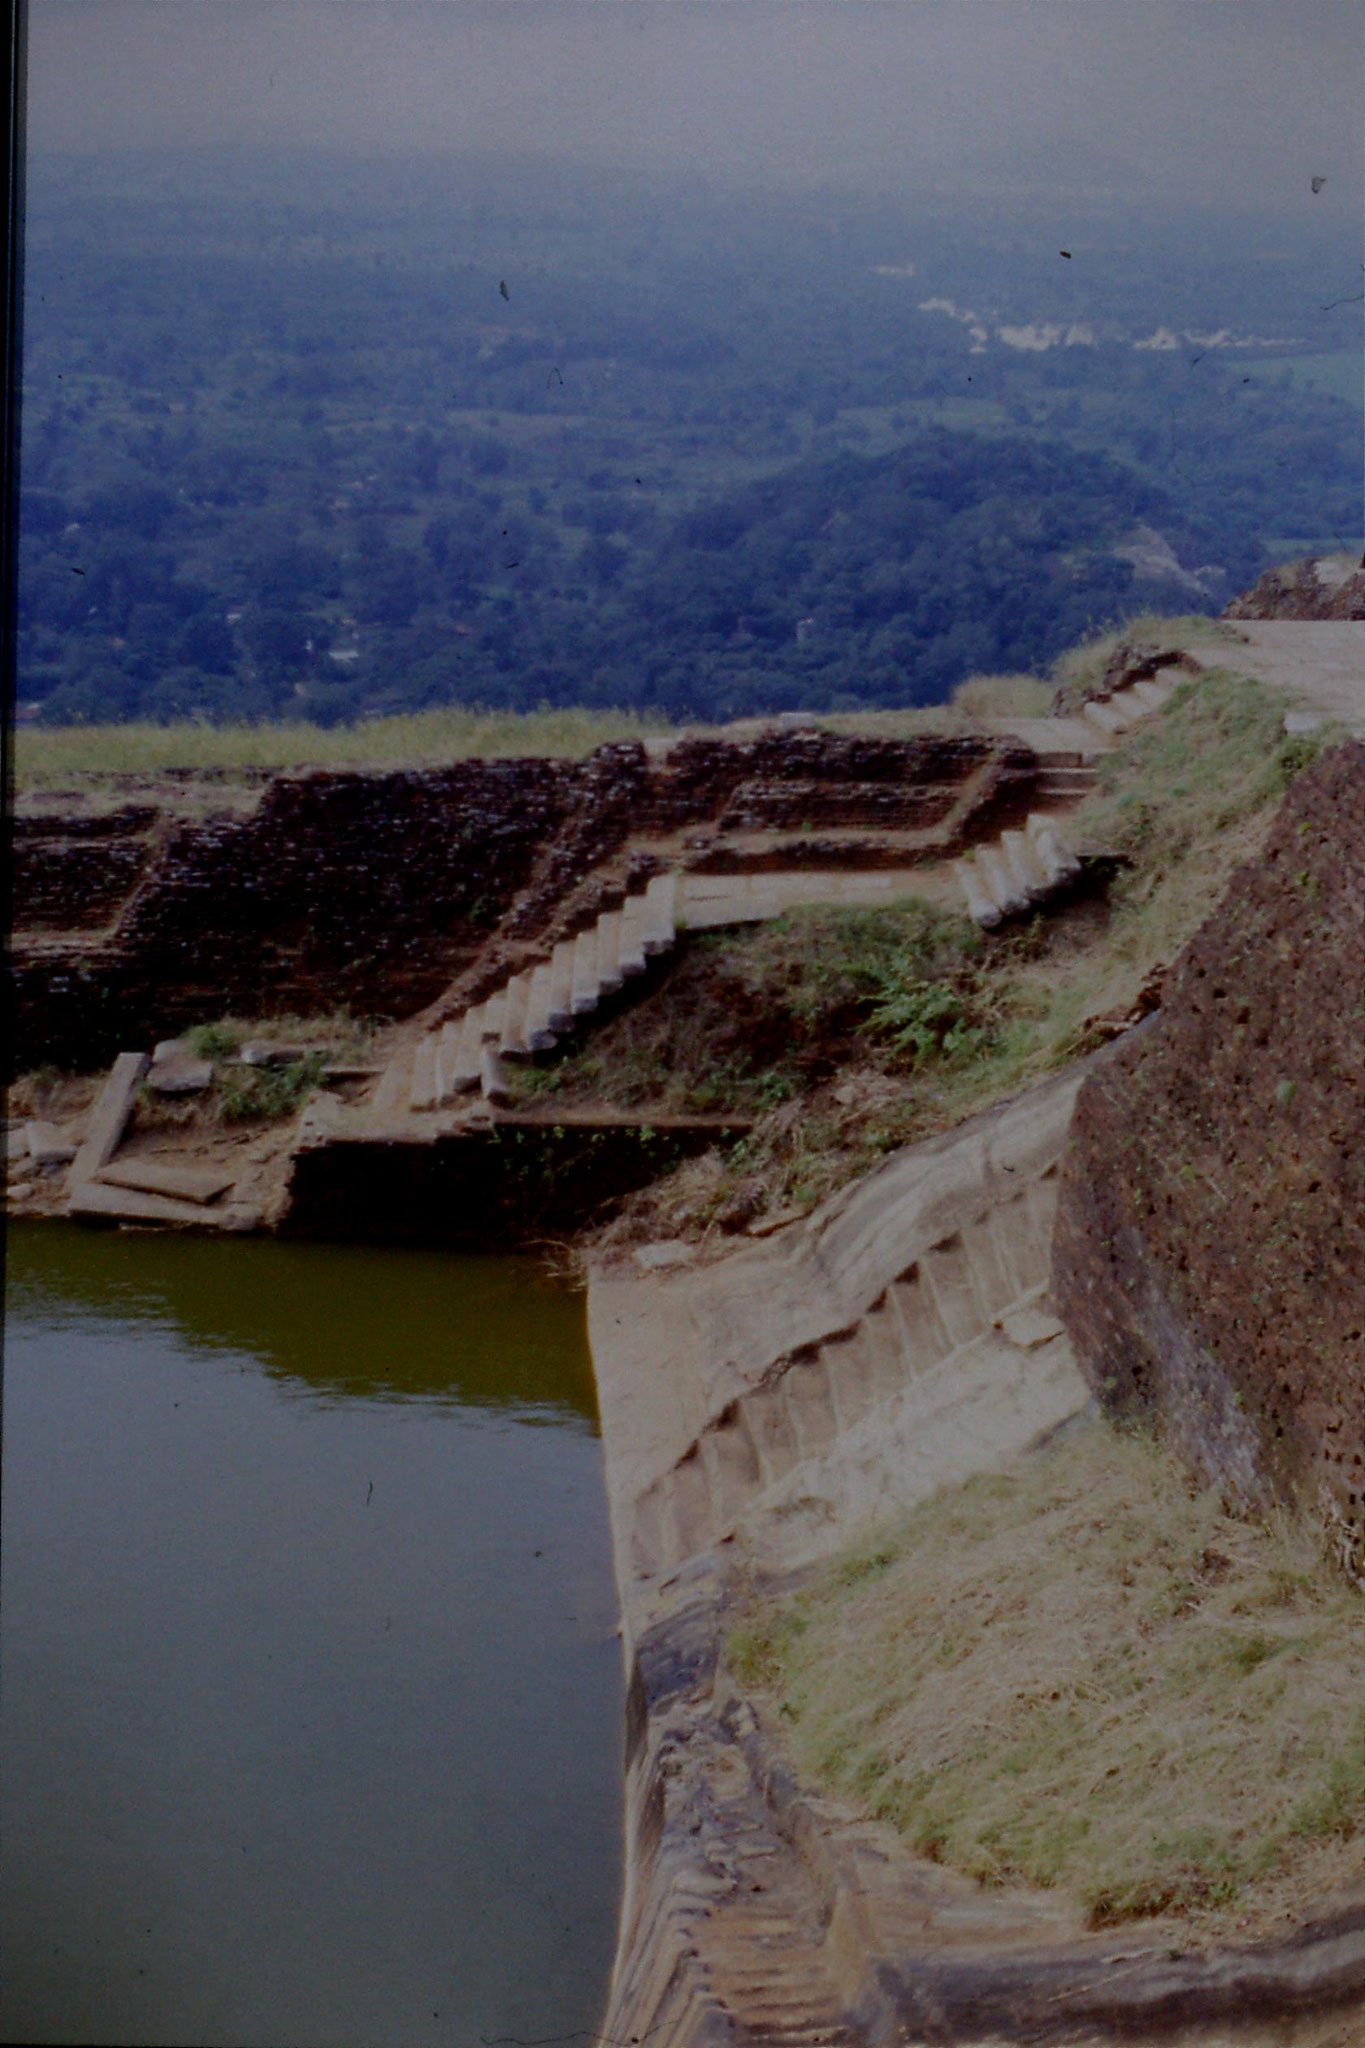 7/2/1990: 30: Sigiriya bathing pools on top of rock